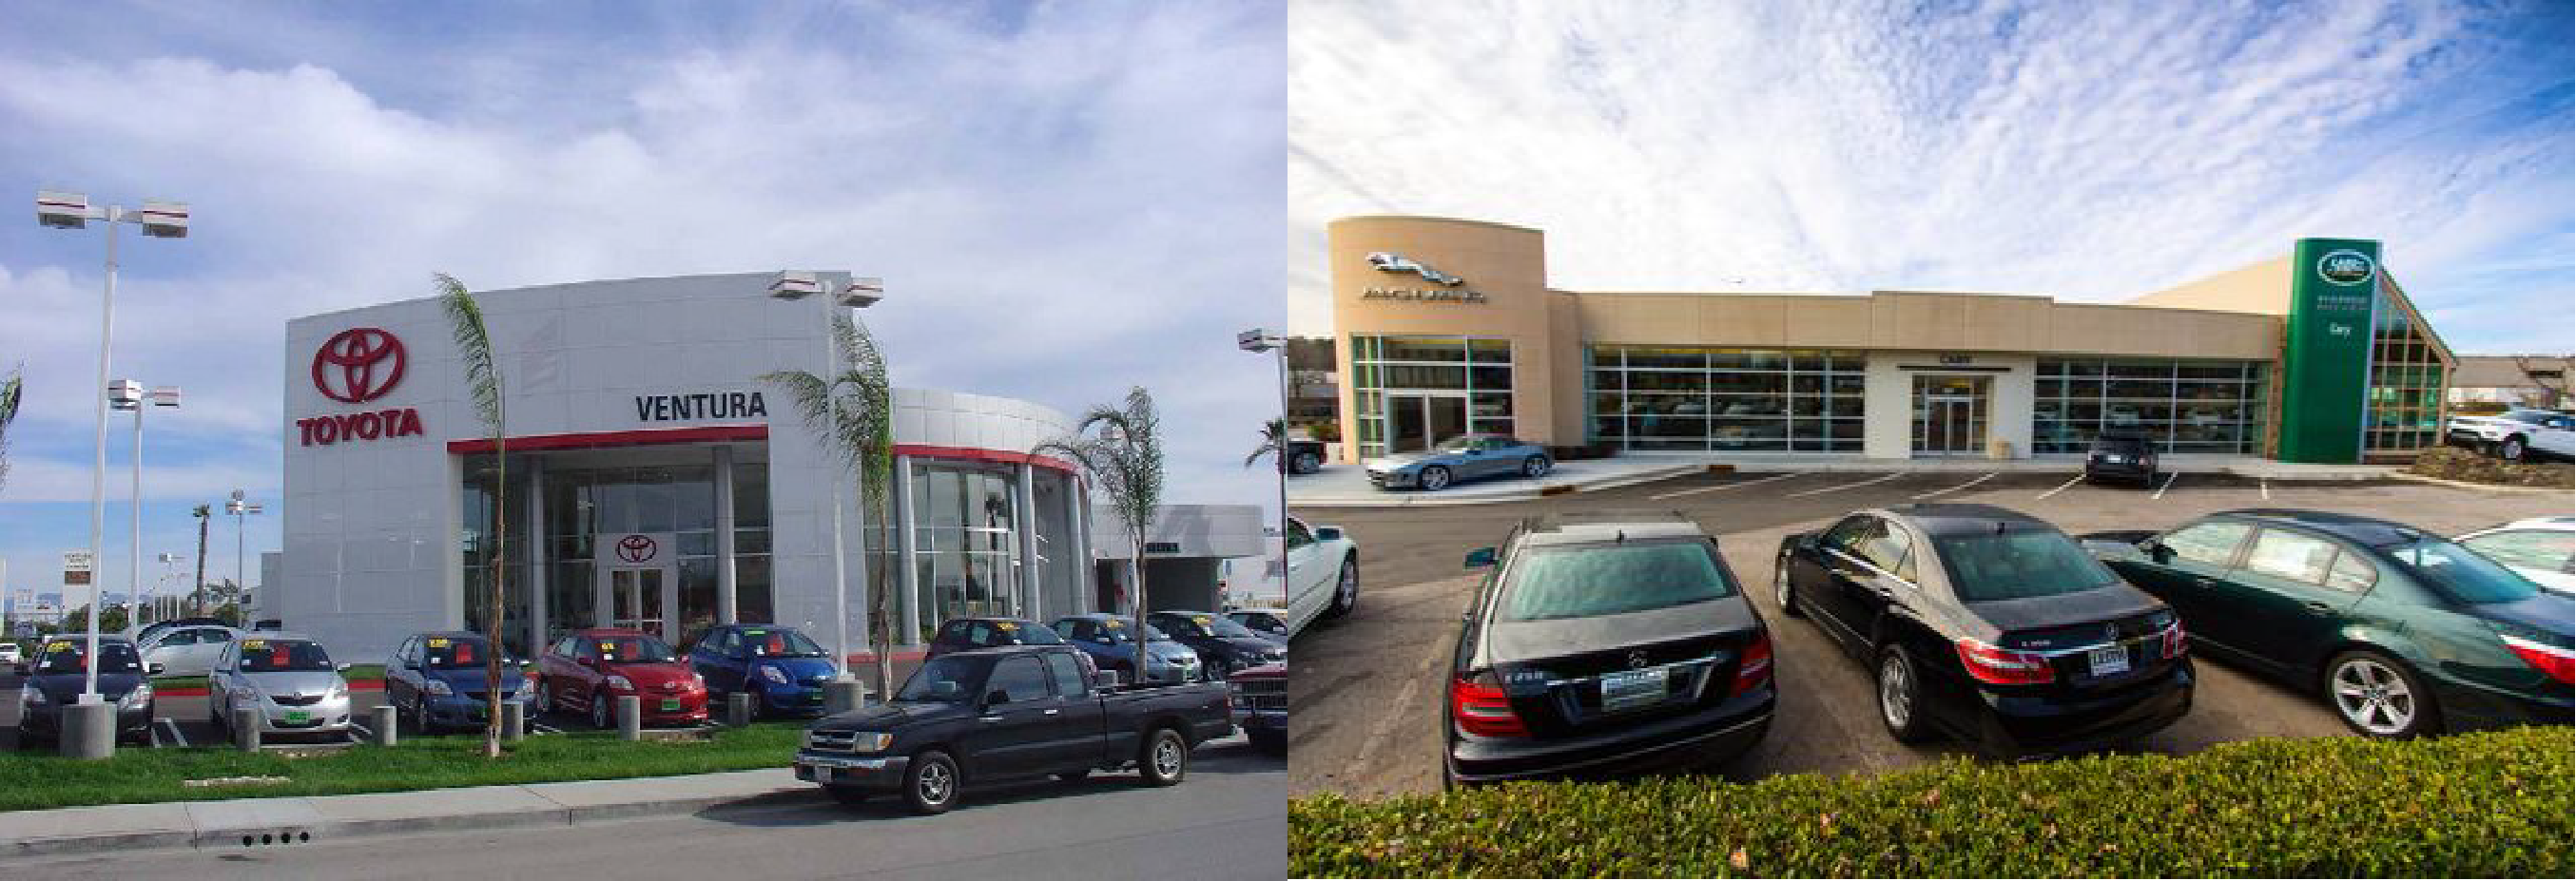 Congratulations Ventura Toyota and Jaguar Land Rover Cary, our December Dealerships of the Month!